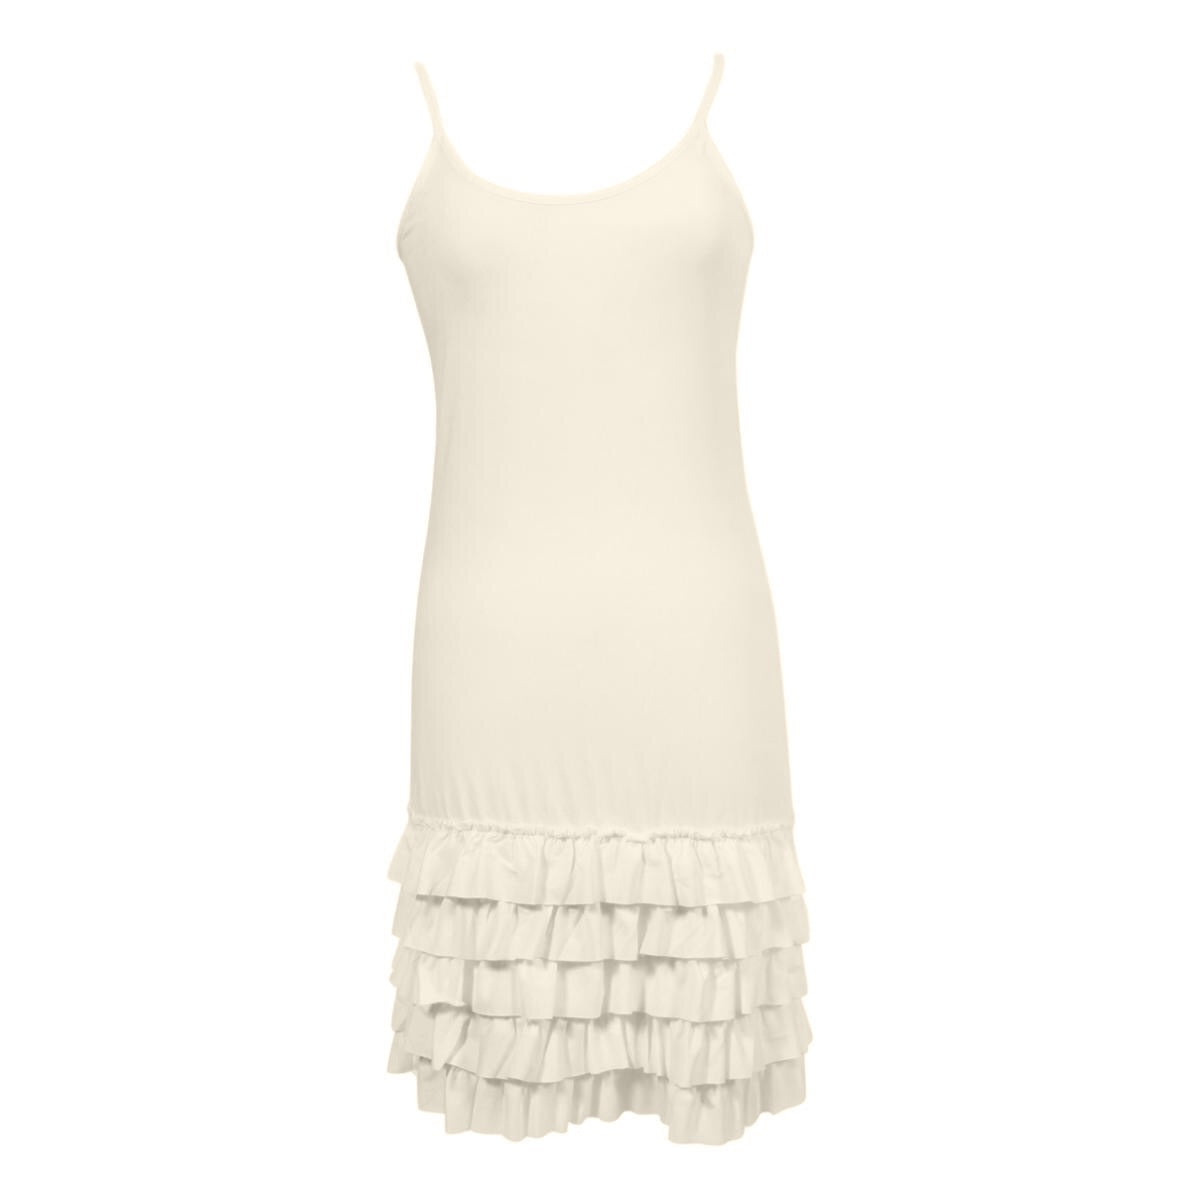 Delicious Frilly Strap Slip Dress | cream, strap slips & dresses, Peekaboo Chic | Modest Layering Apparel for women